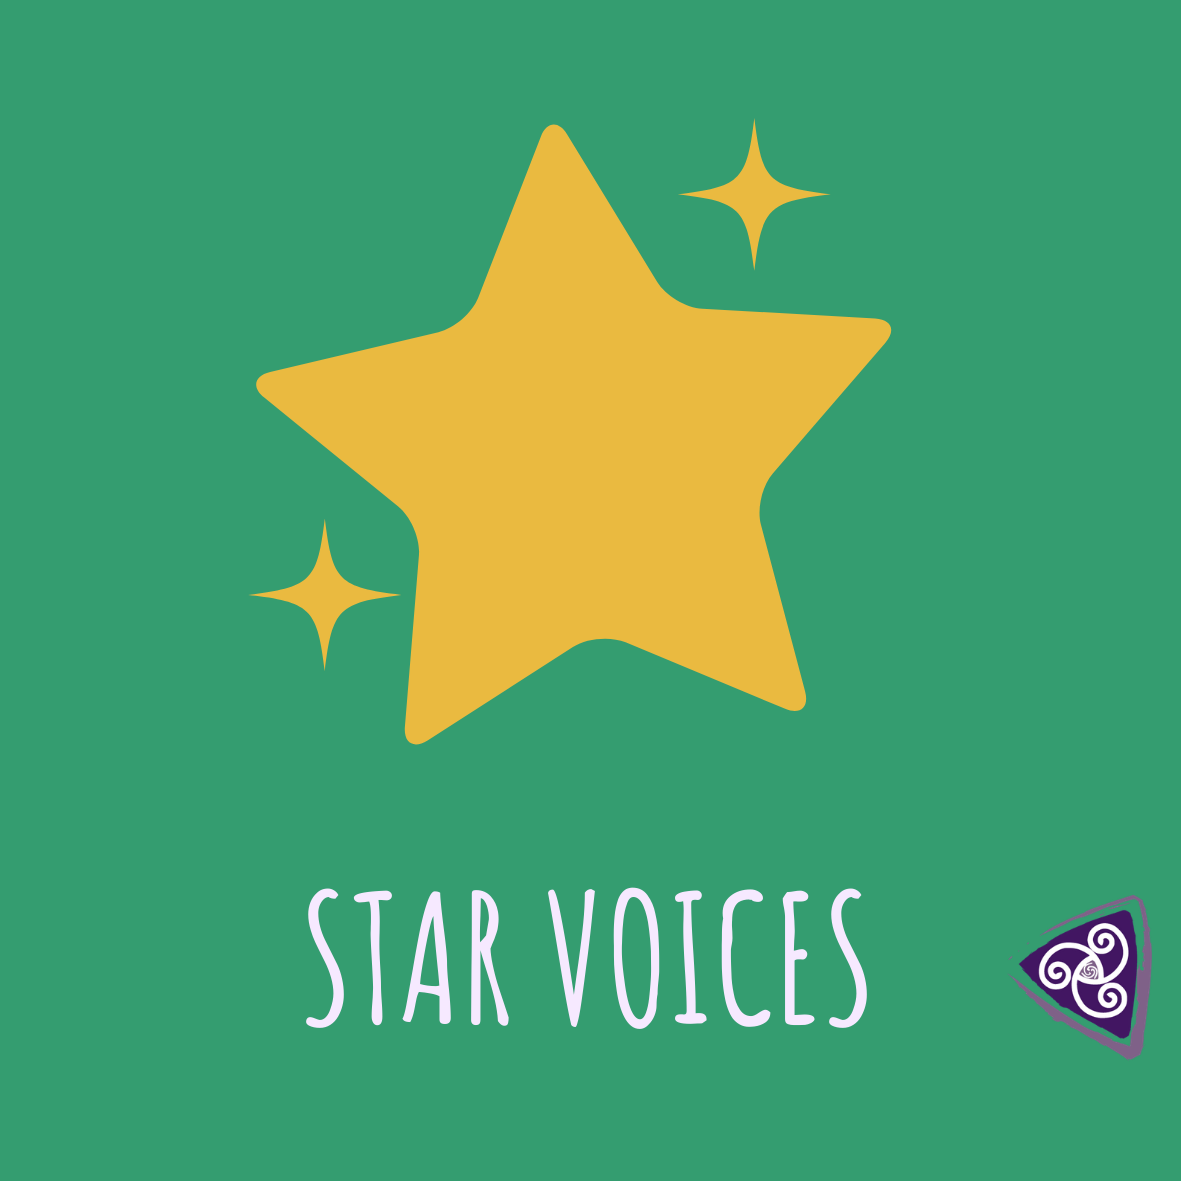 Image: STAR. Text: STAR VOICES